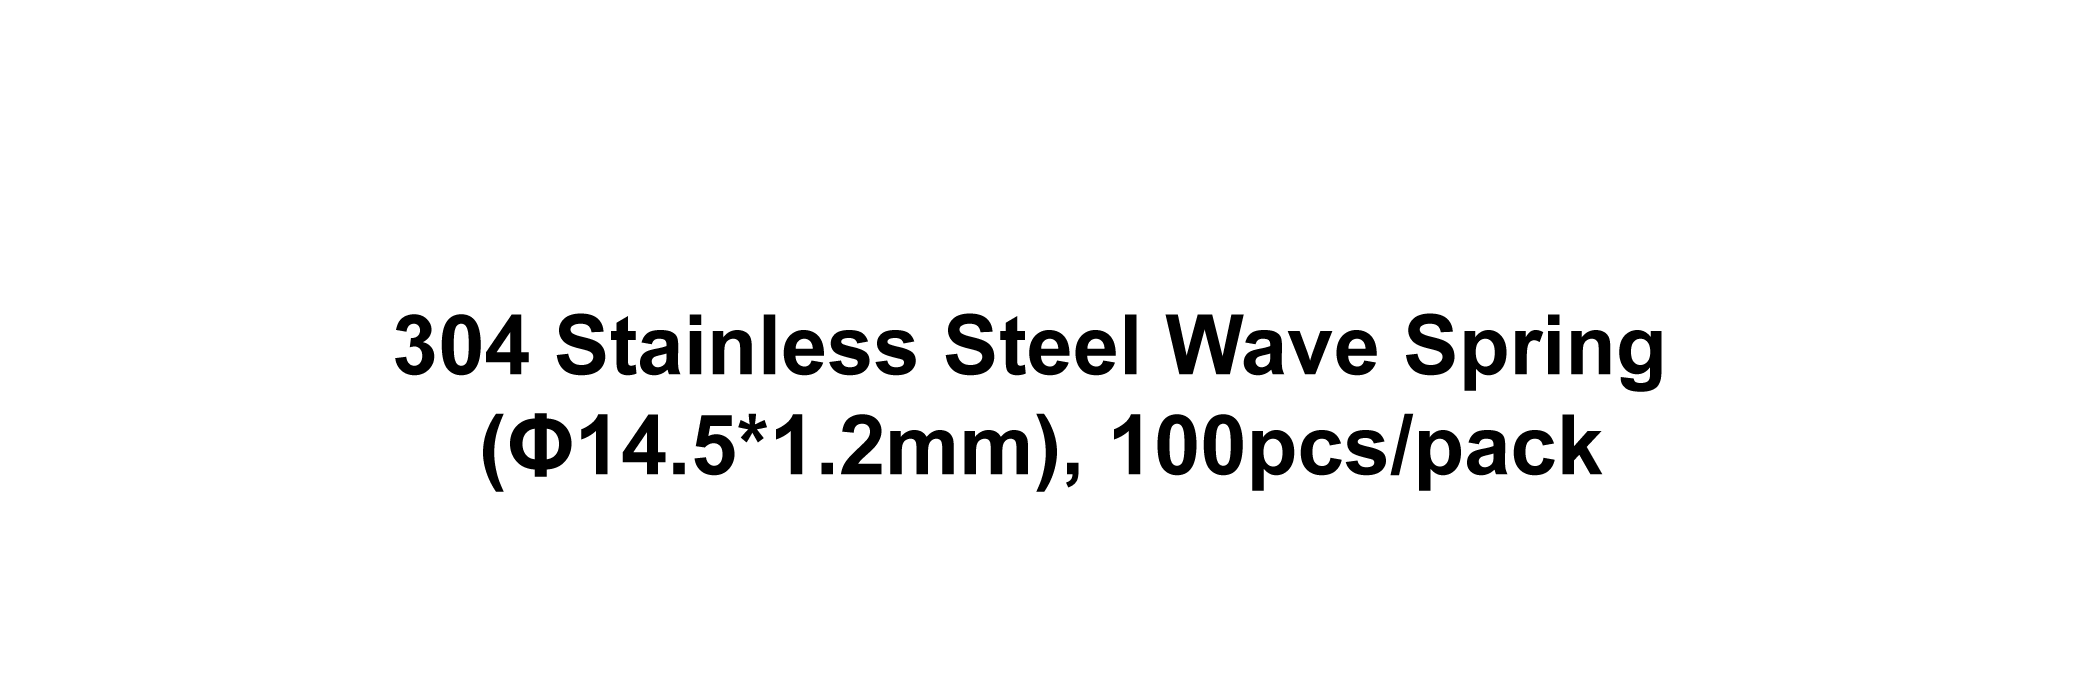 304 Stainless Steel Wave Spring (Φ14.5*1.2mm), 100pcs/pack